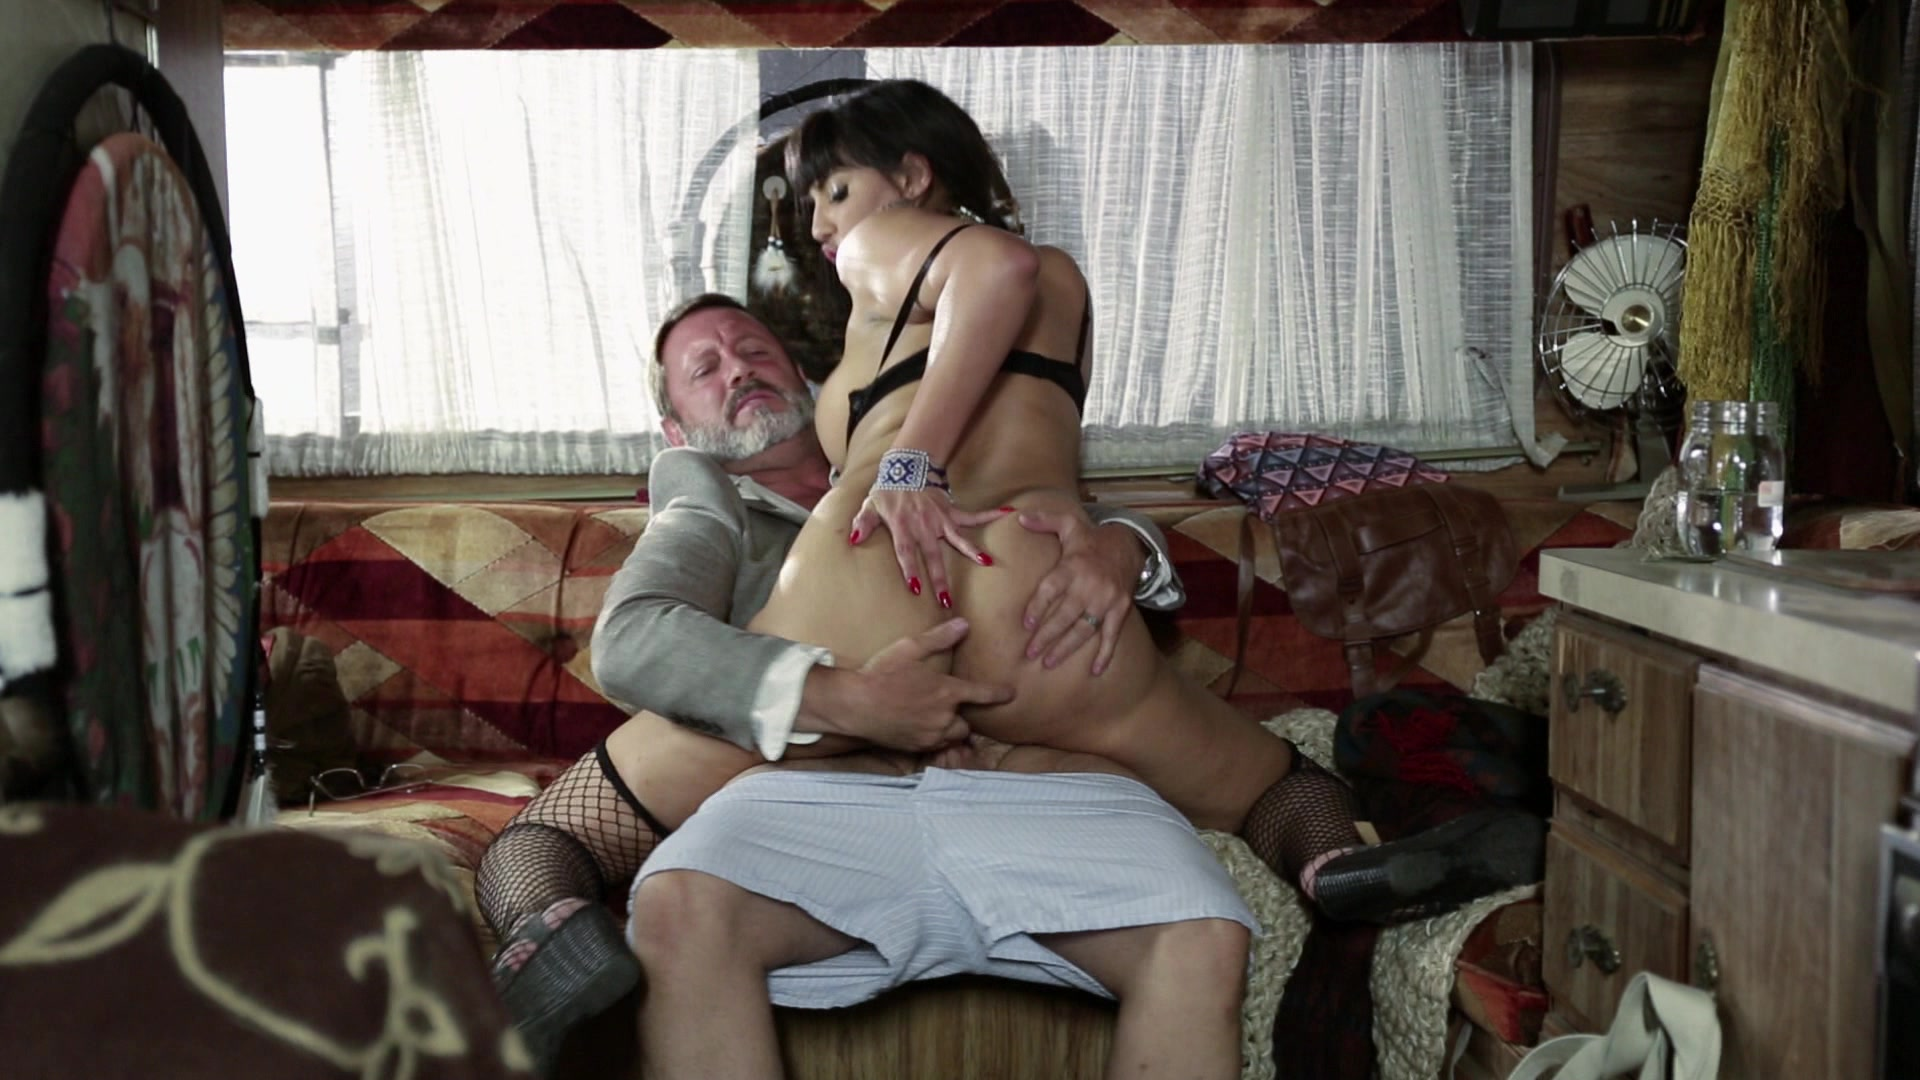 Scene with Brad Armstrong and Mercedes Carrera - image 17 out of 20